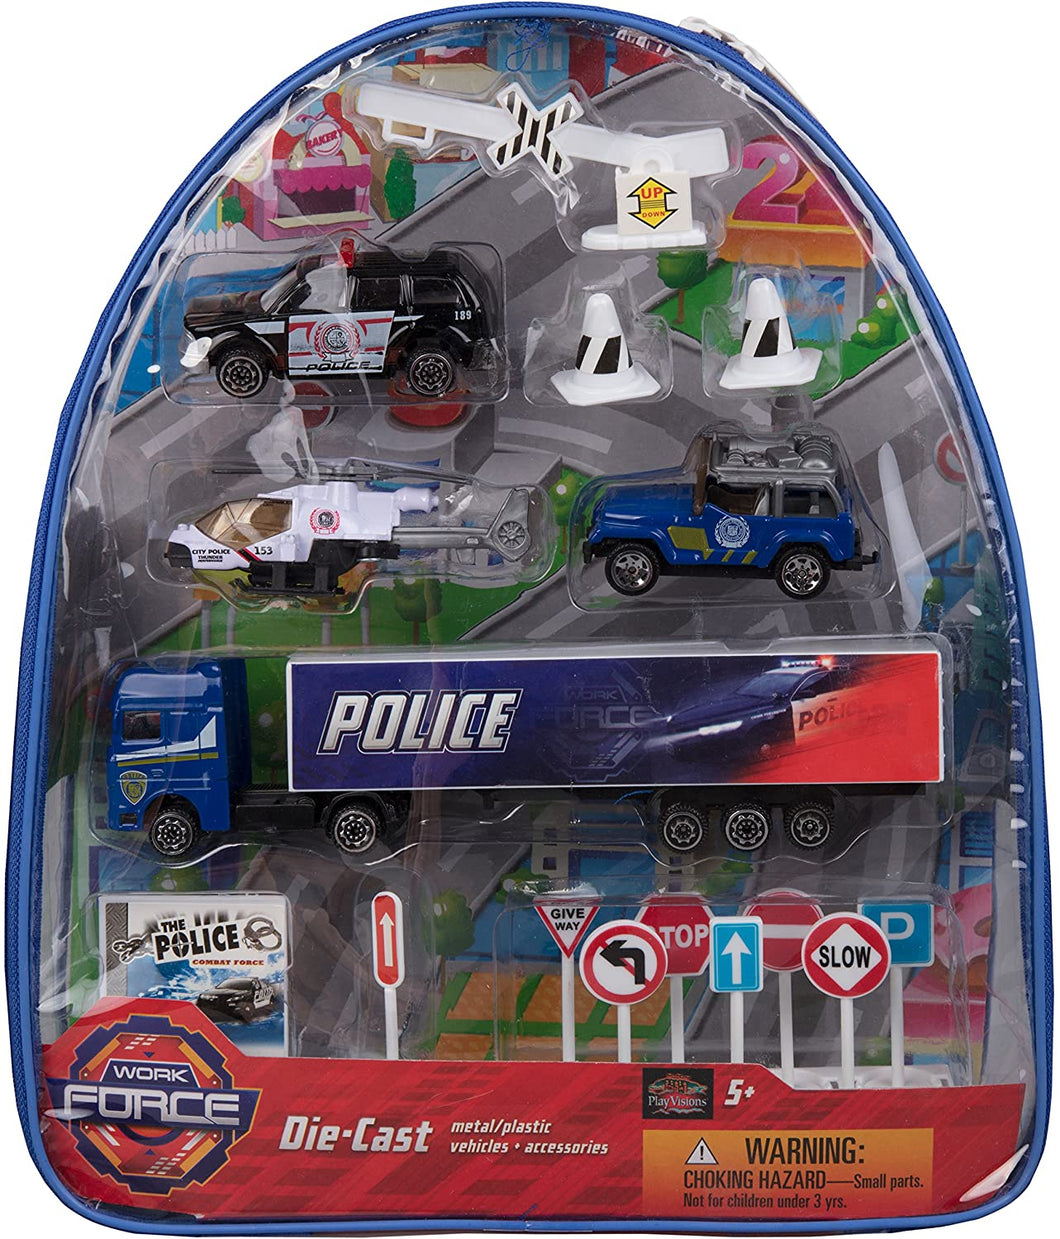 Work Force Kid's Police Department Backpack Play Set - Includes Die Cast Vehicles and Accessories